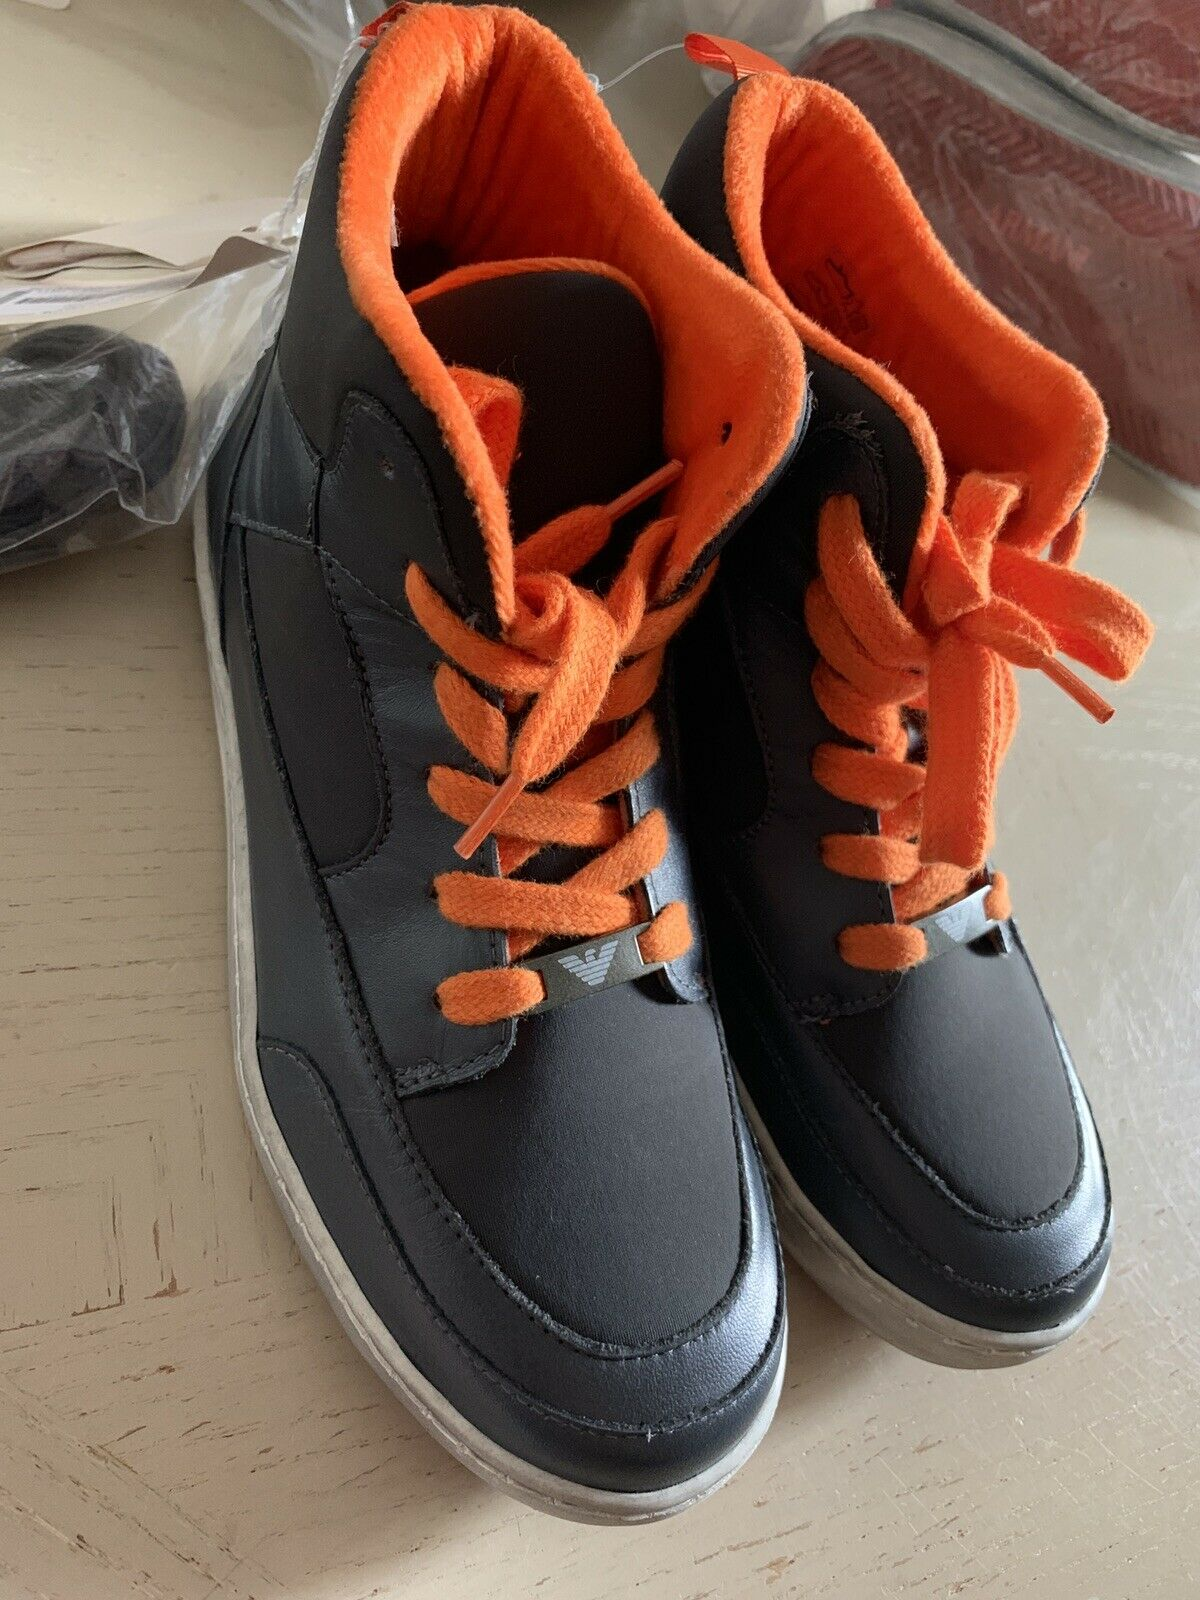 New Armani Junior Boys Leather/Nylon Sneakers Shoes Gray 5.5 US ( 38 Eur )